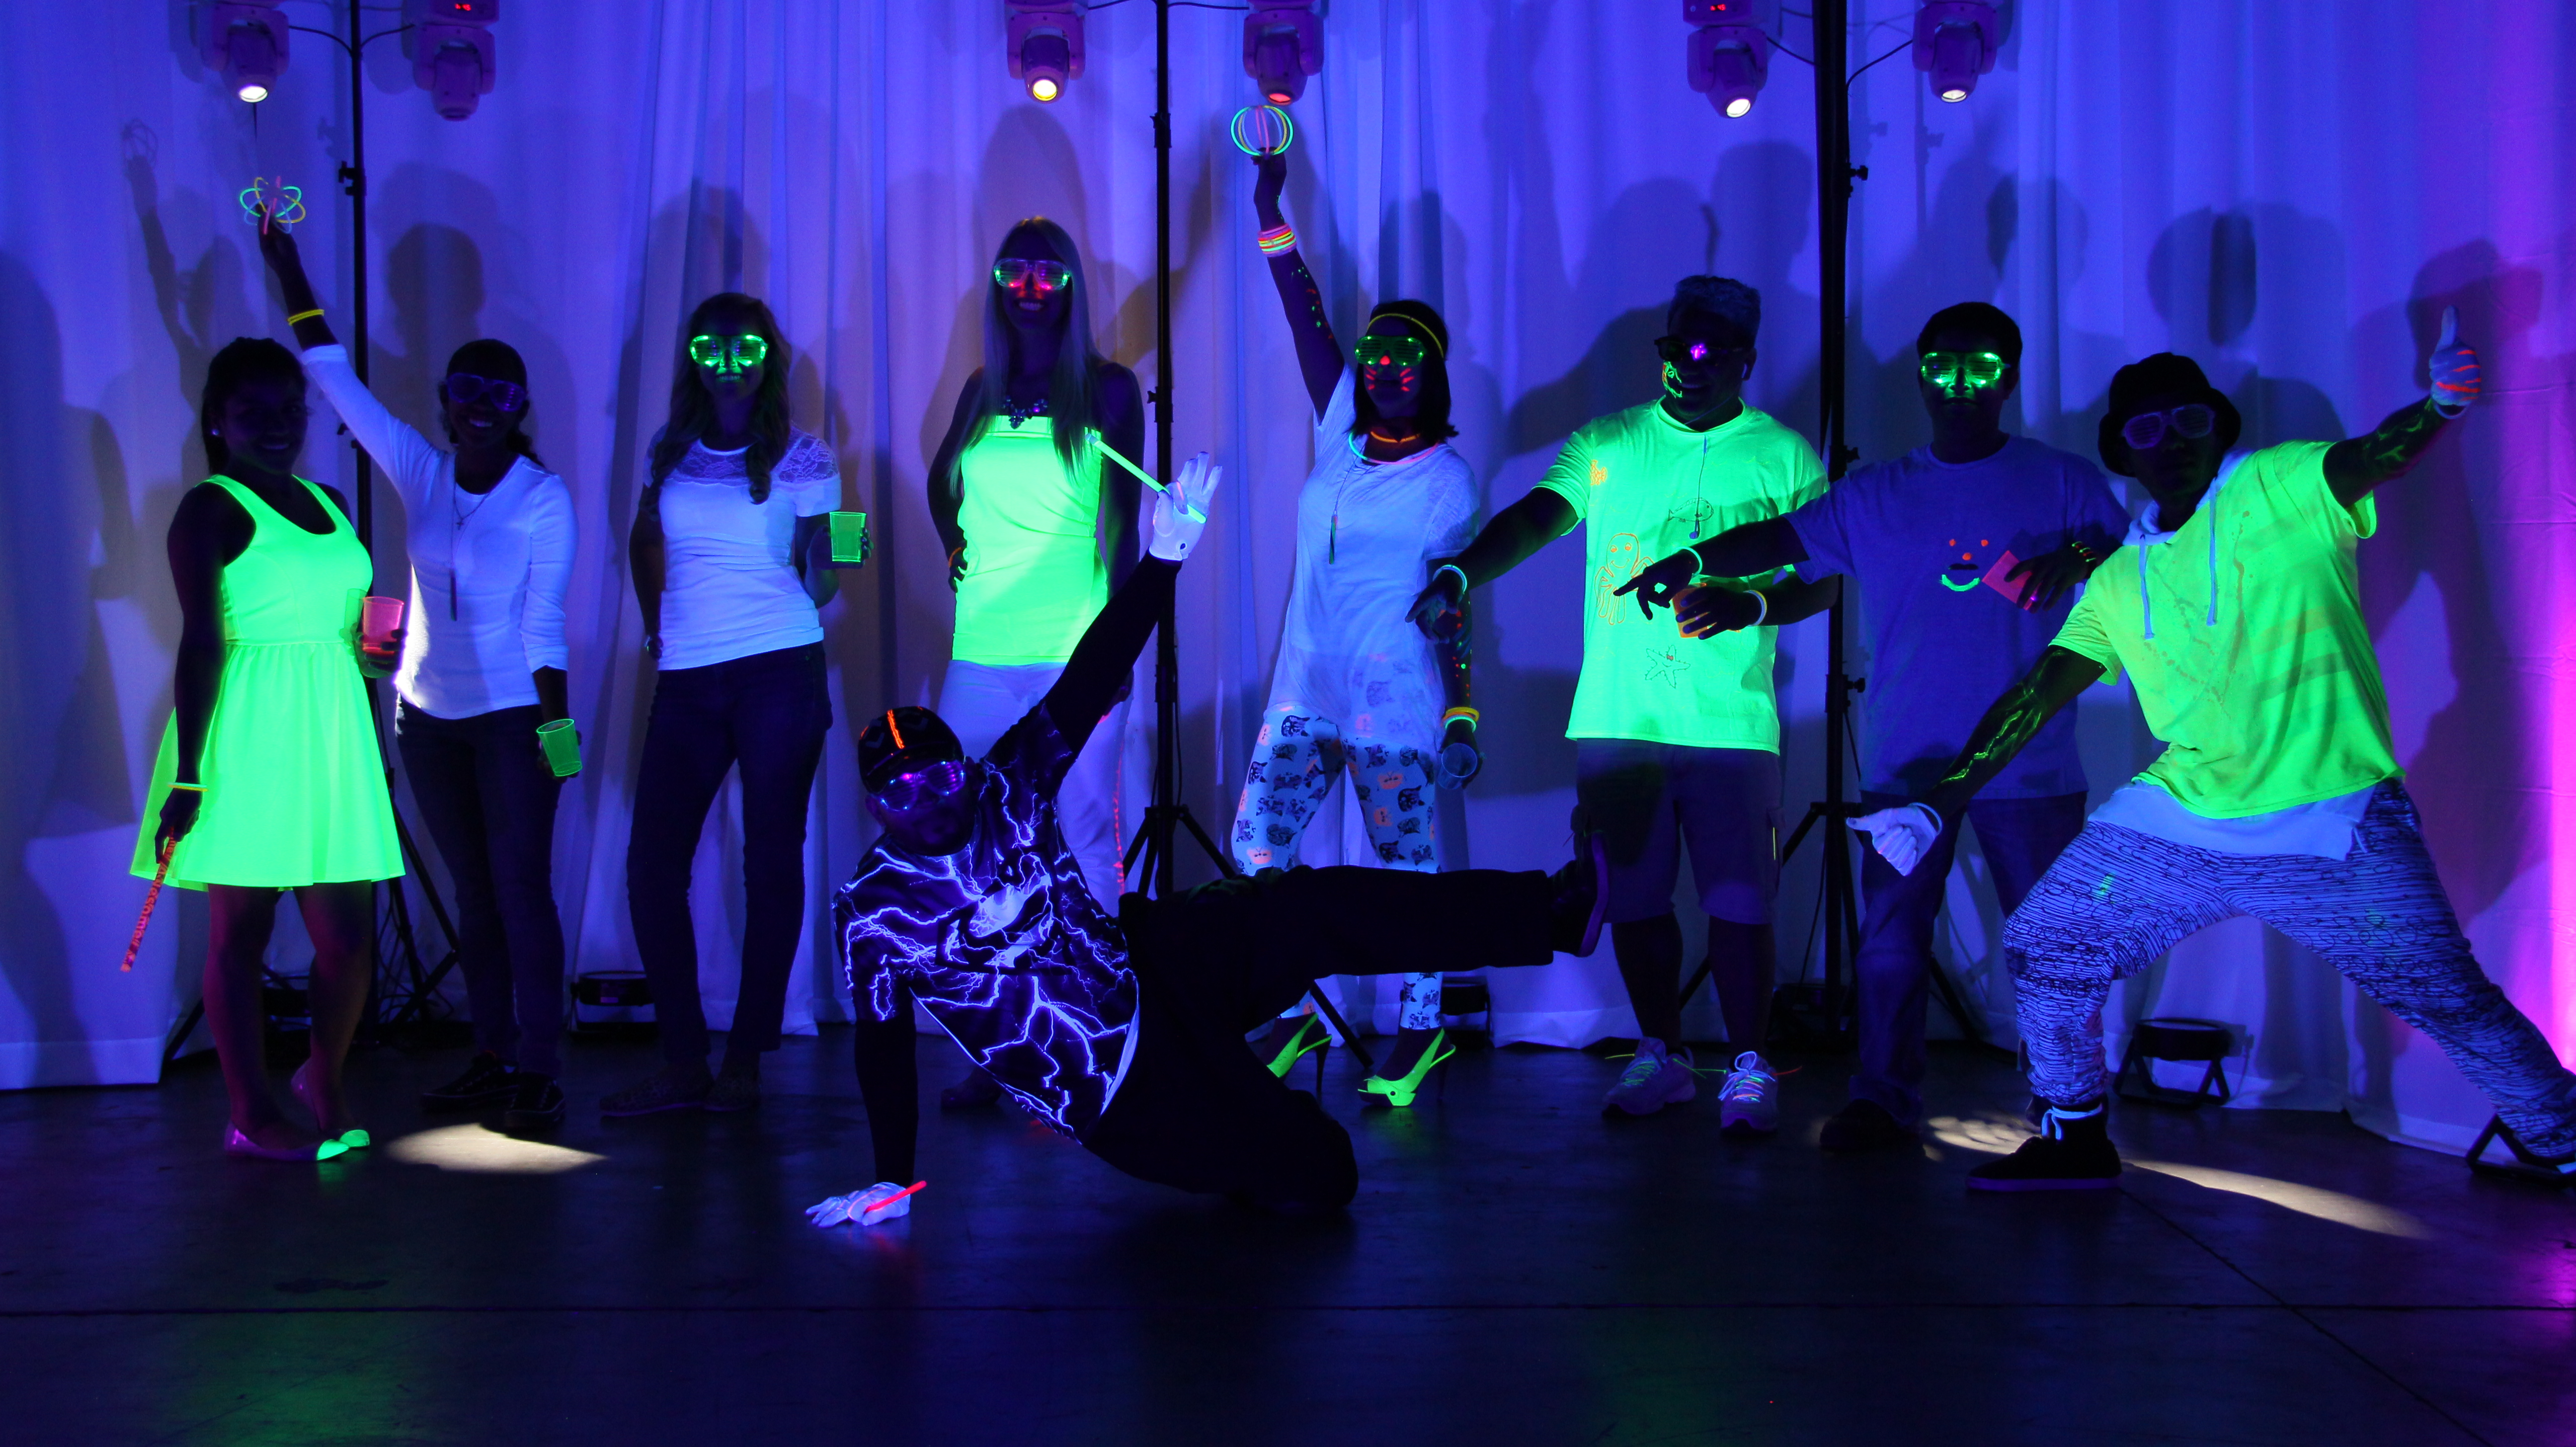 kids free com for df dance event light presented black the dark nowplayingutah by lighting party studio in primary glow